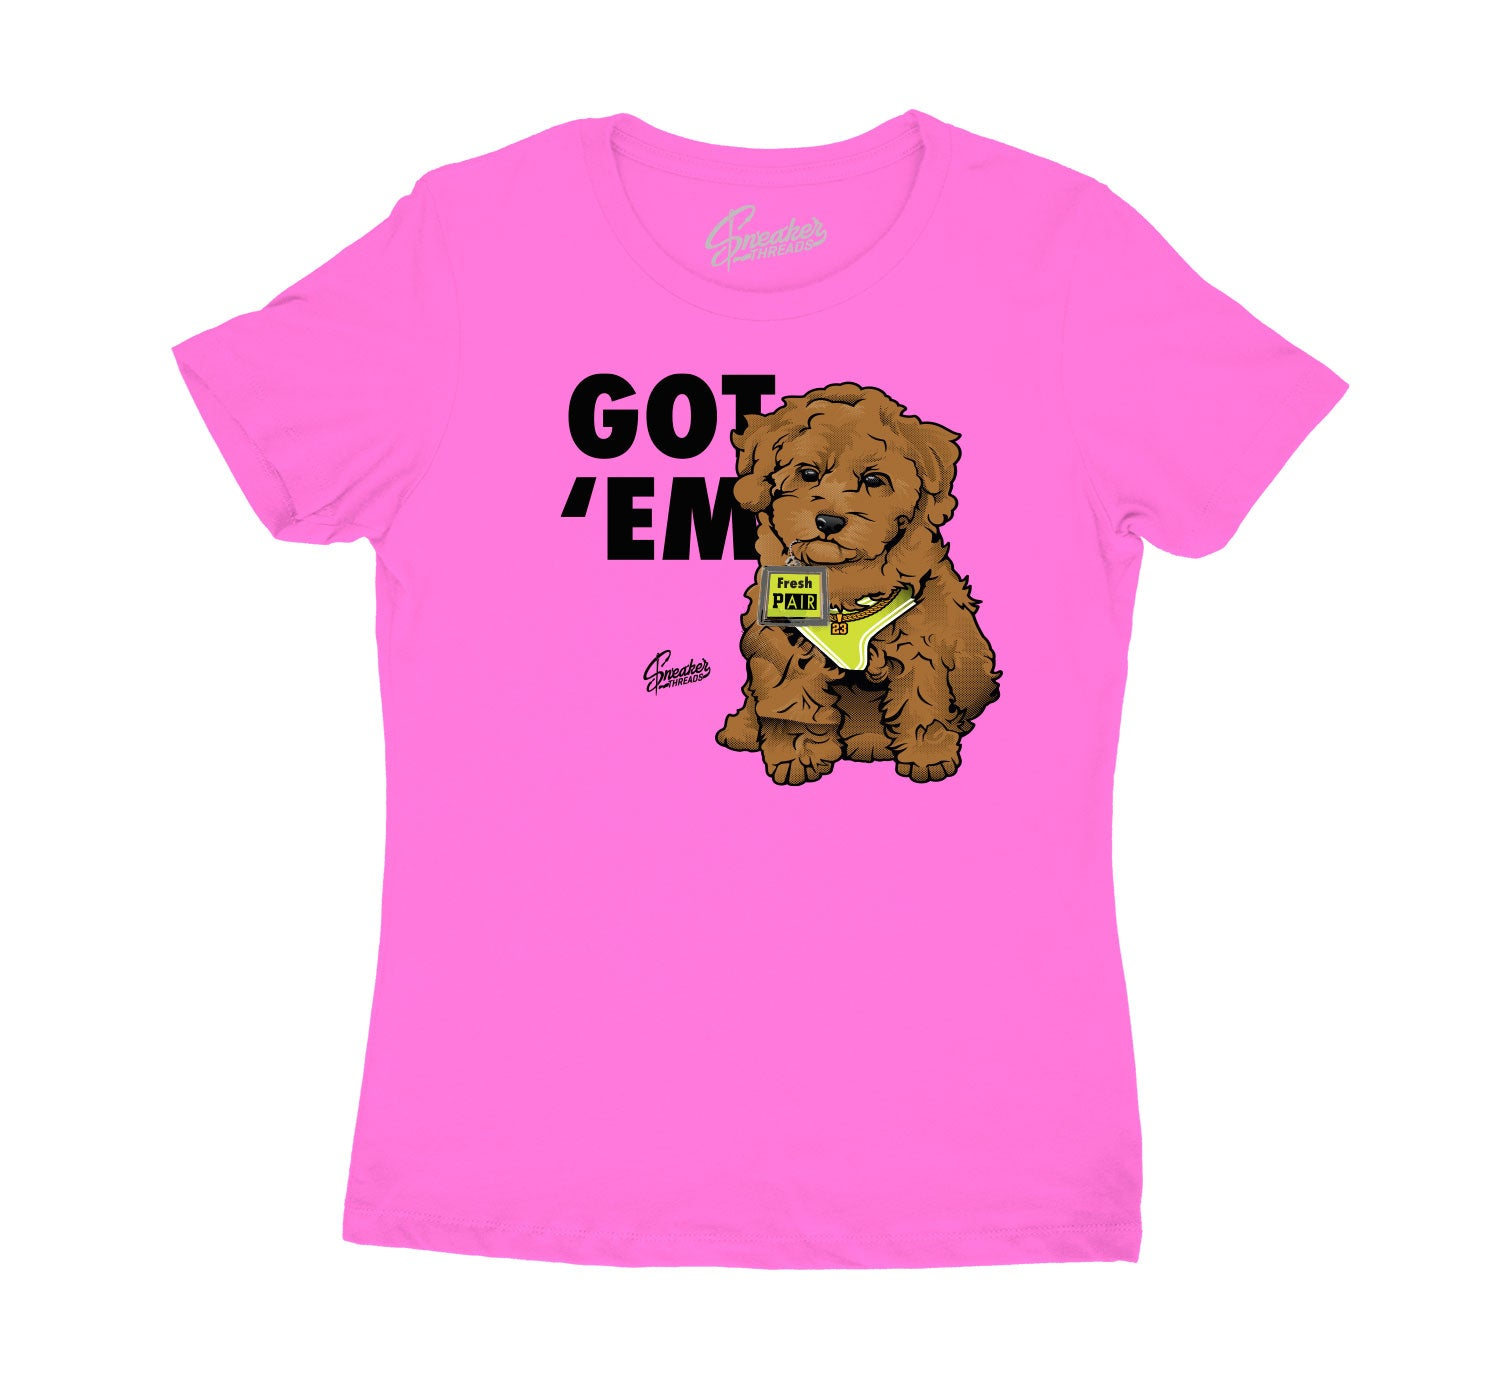 Womens Lemon Venom Shirt - Got Em - Neon Pink